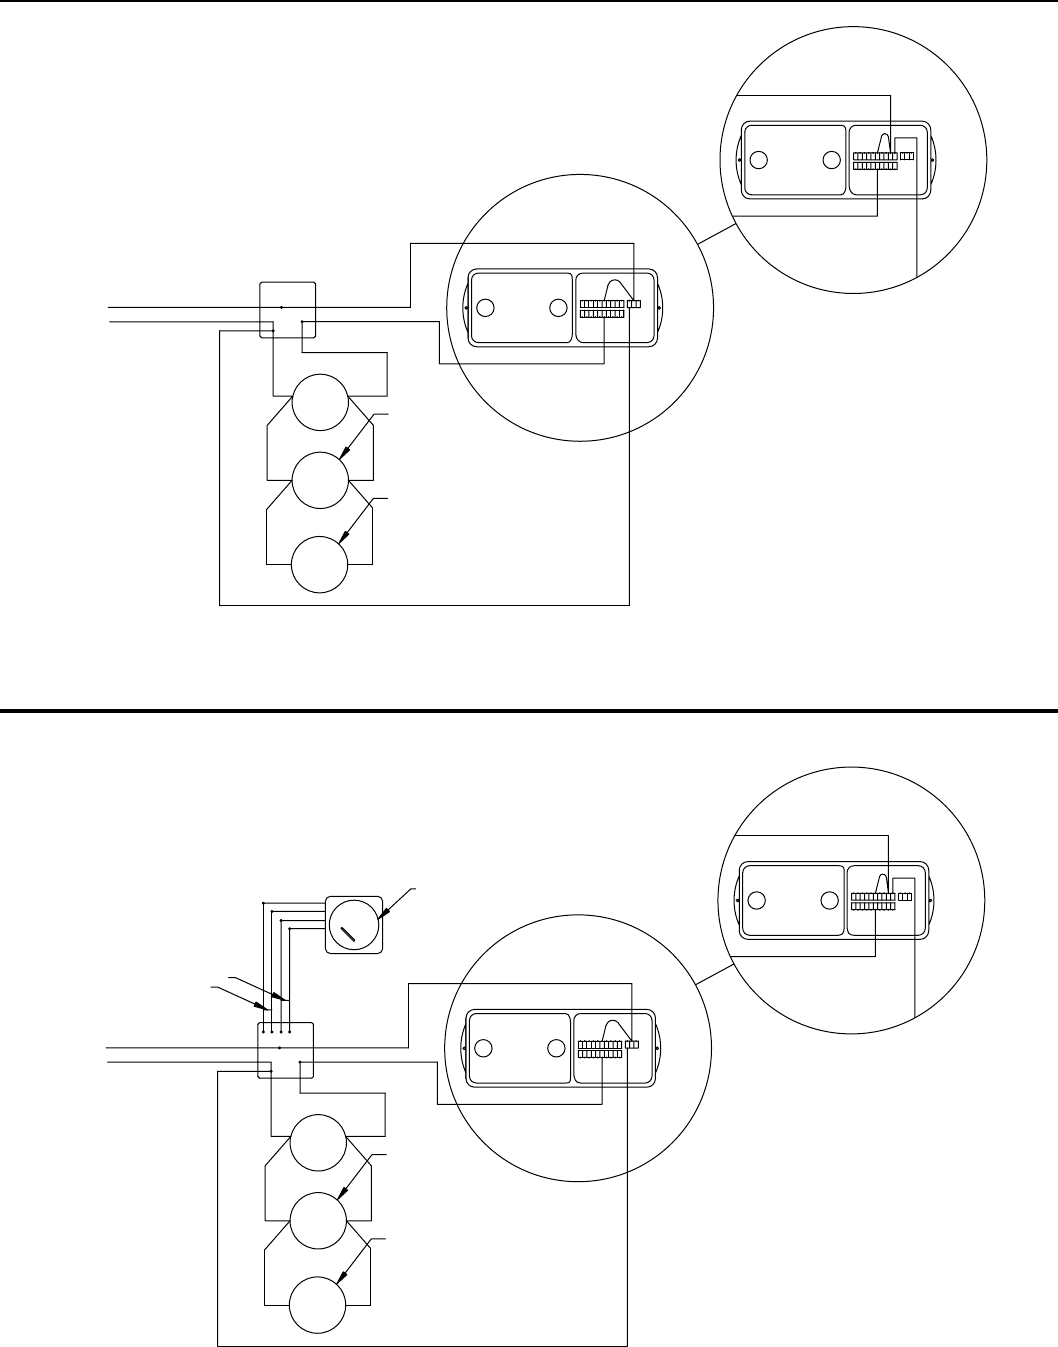 Smd Series 826250smoke Dampers Smdsmdr Iom D4120 Duct Smoke Detector Wiring Diagram Optional